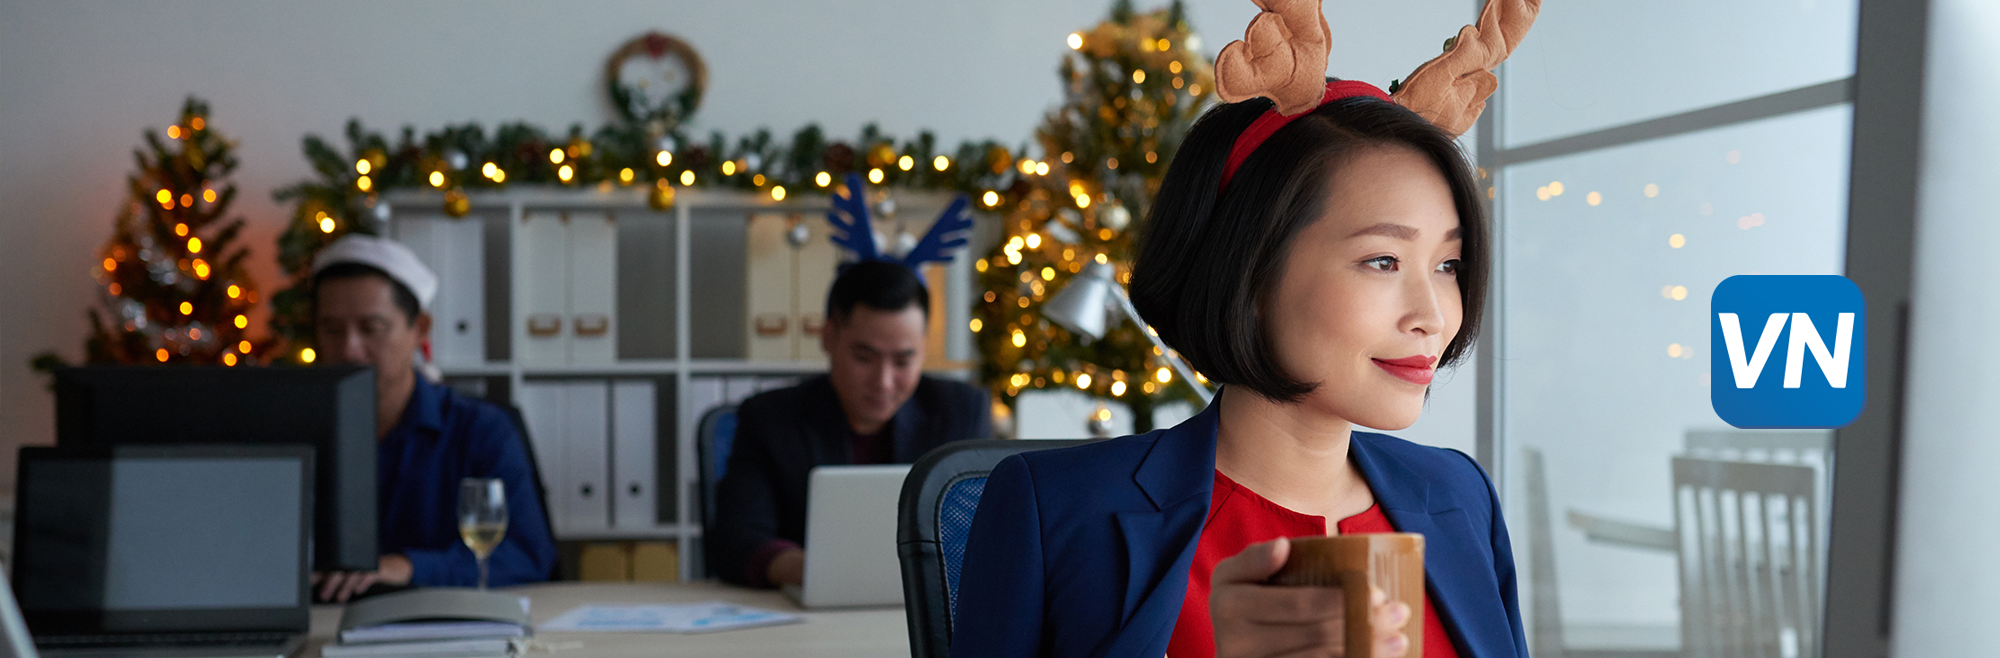 woman in reindeer headband at answering service